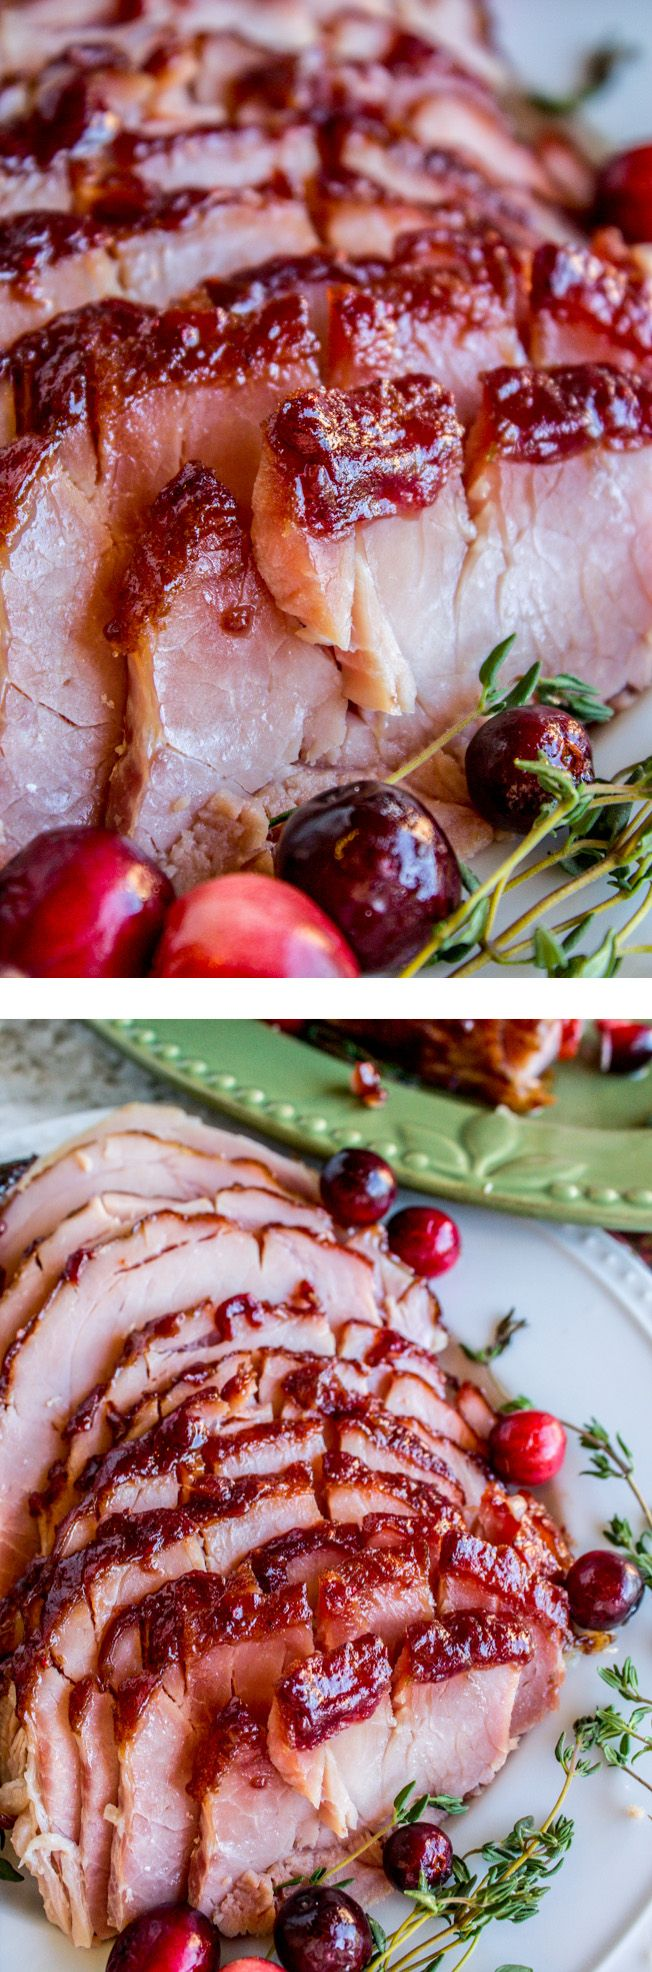 Oven Roasted Cranberry Dijon Glazed Ham From The Food